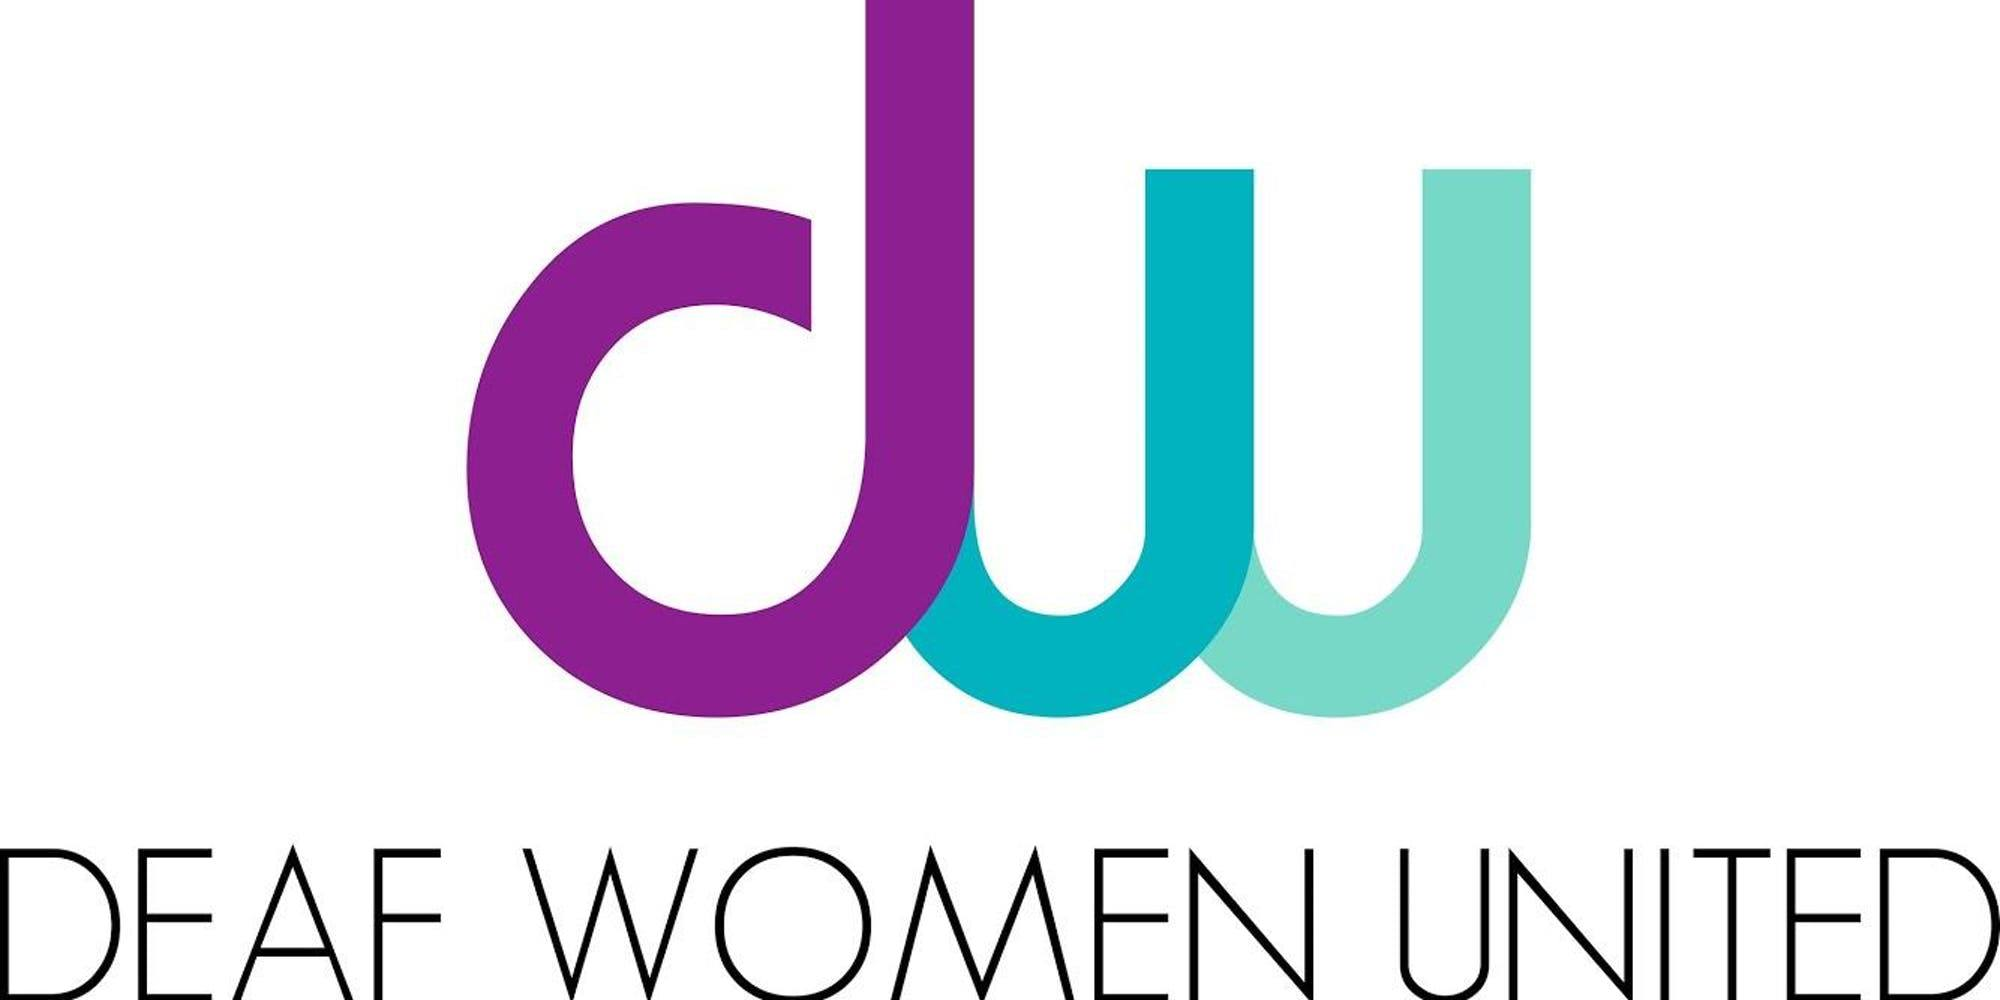 Biennial Deaf Women United Conference National - Shine Your